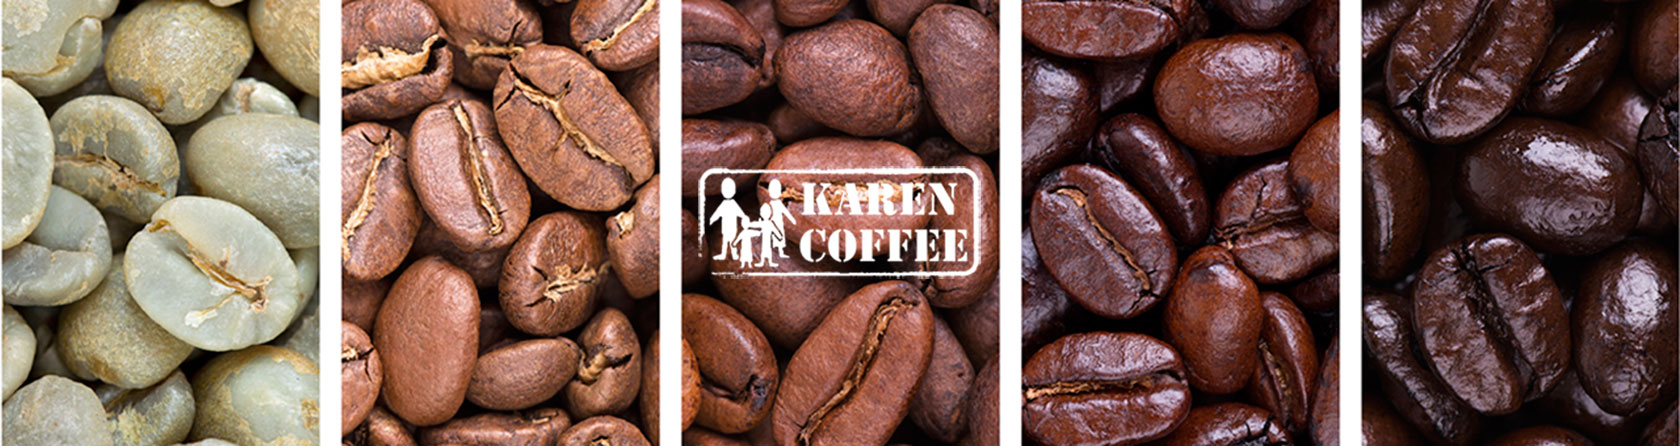 karen coffee varieties